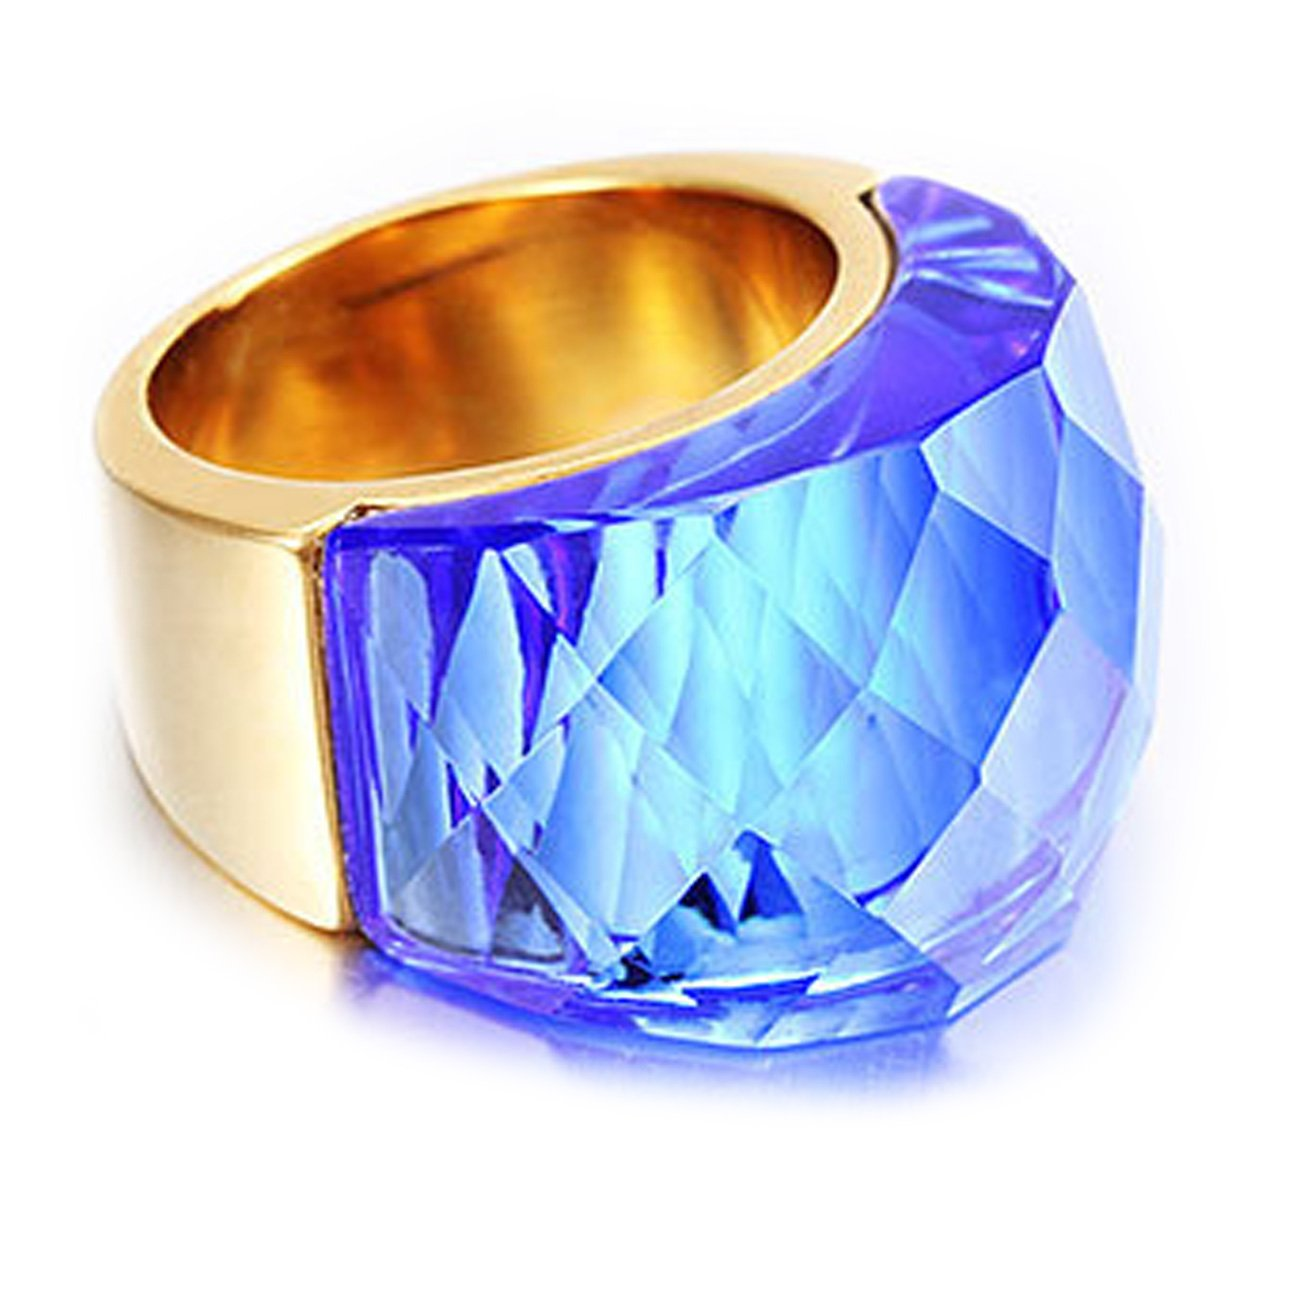 NELSON KENT Women's Stainless Steel Half Pack Transparent Glass Ring Gold Blue Size6